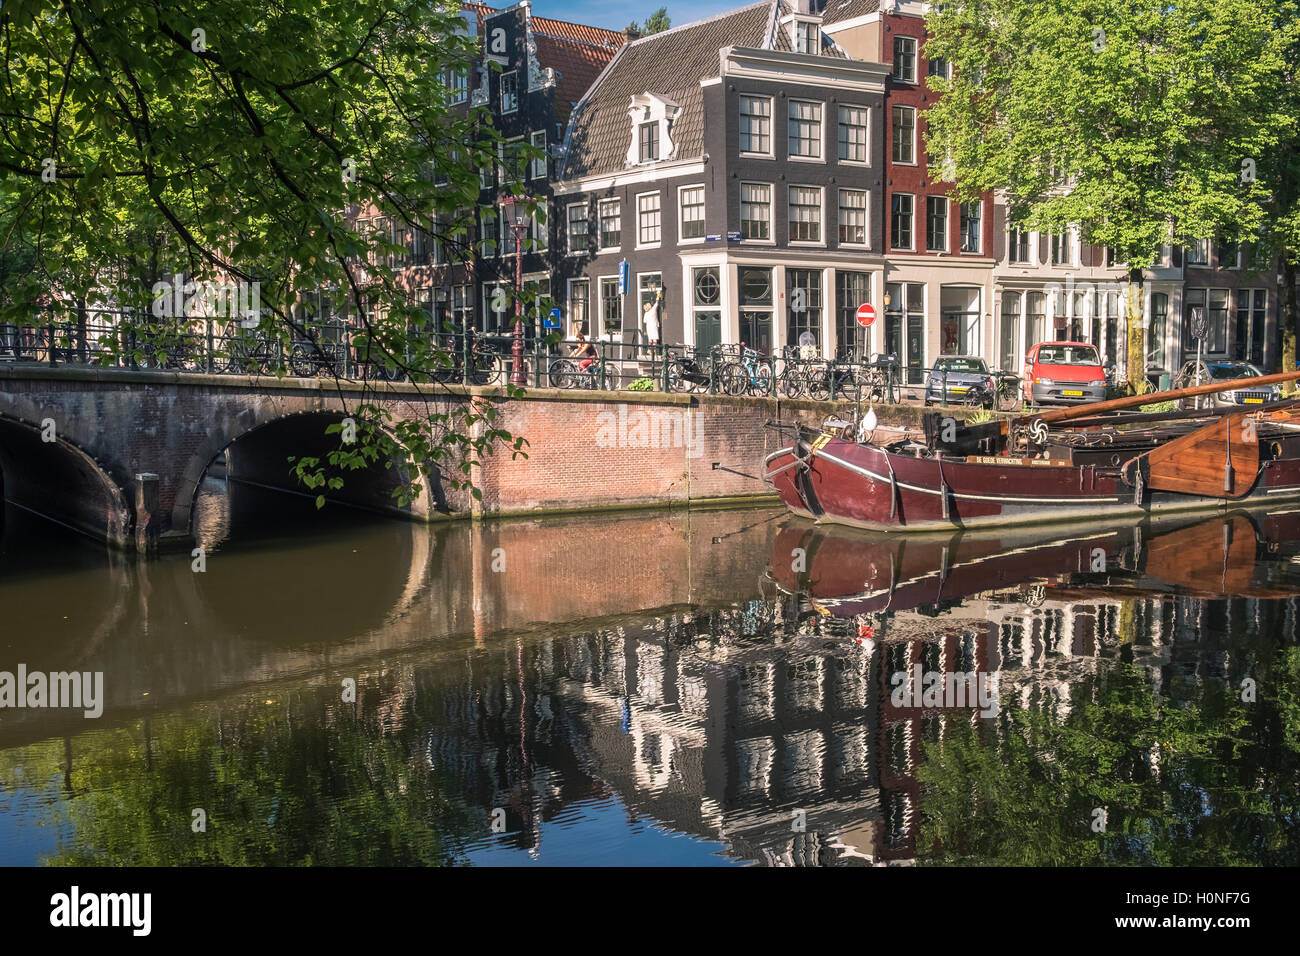 Traditional architecture seen on Prinsengracht canal, Jordaan district, Amsterdam, Netherlands - Stock Image